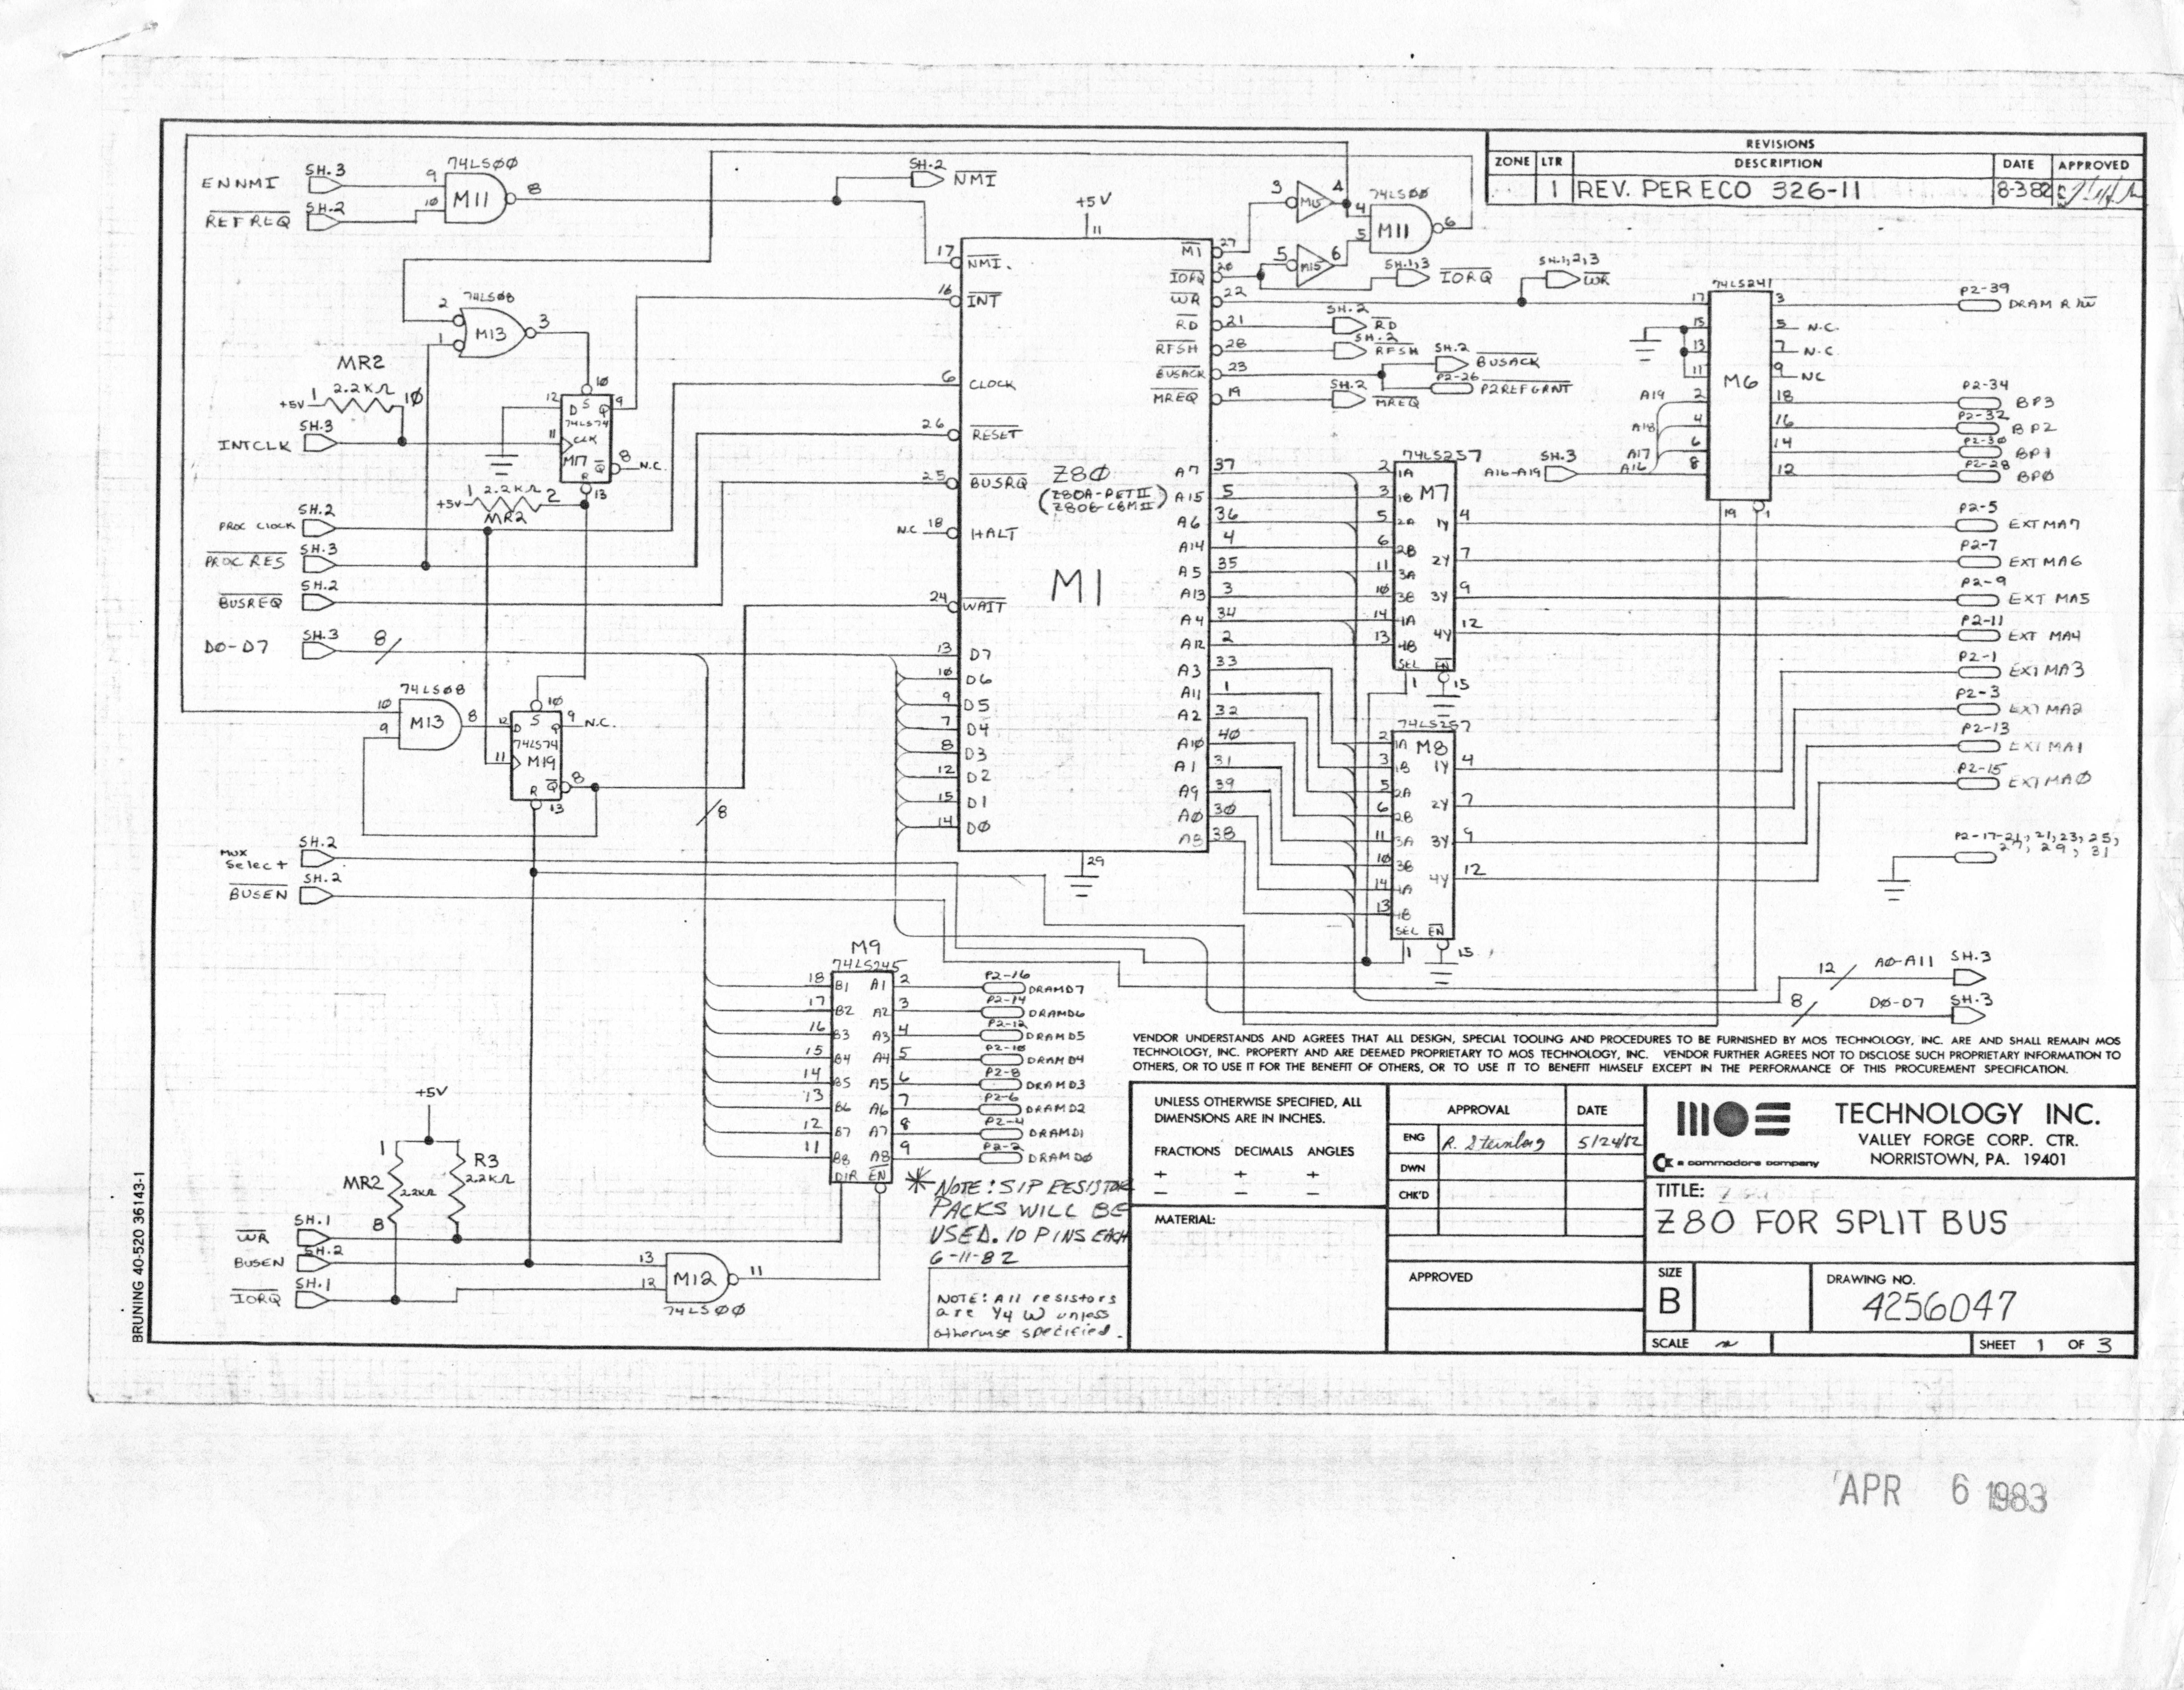 Pub Cbm Schematics Index G2 Schematicjpg 984 Kb 114 Views 4256047 03